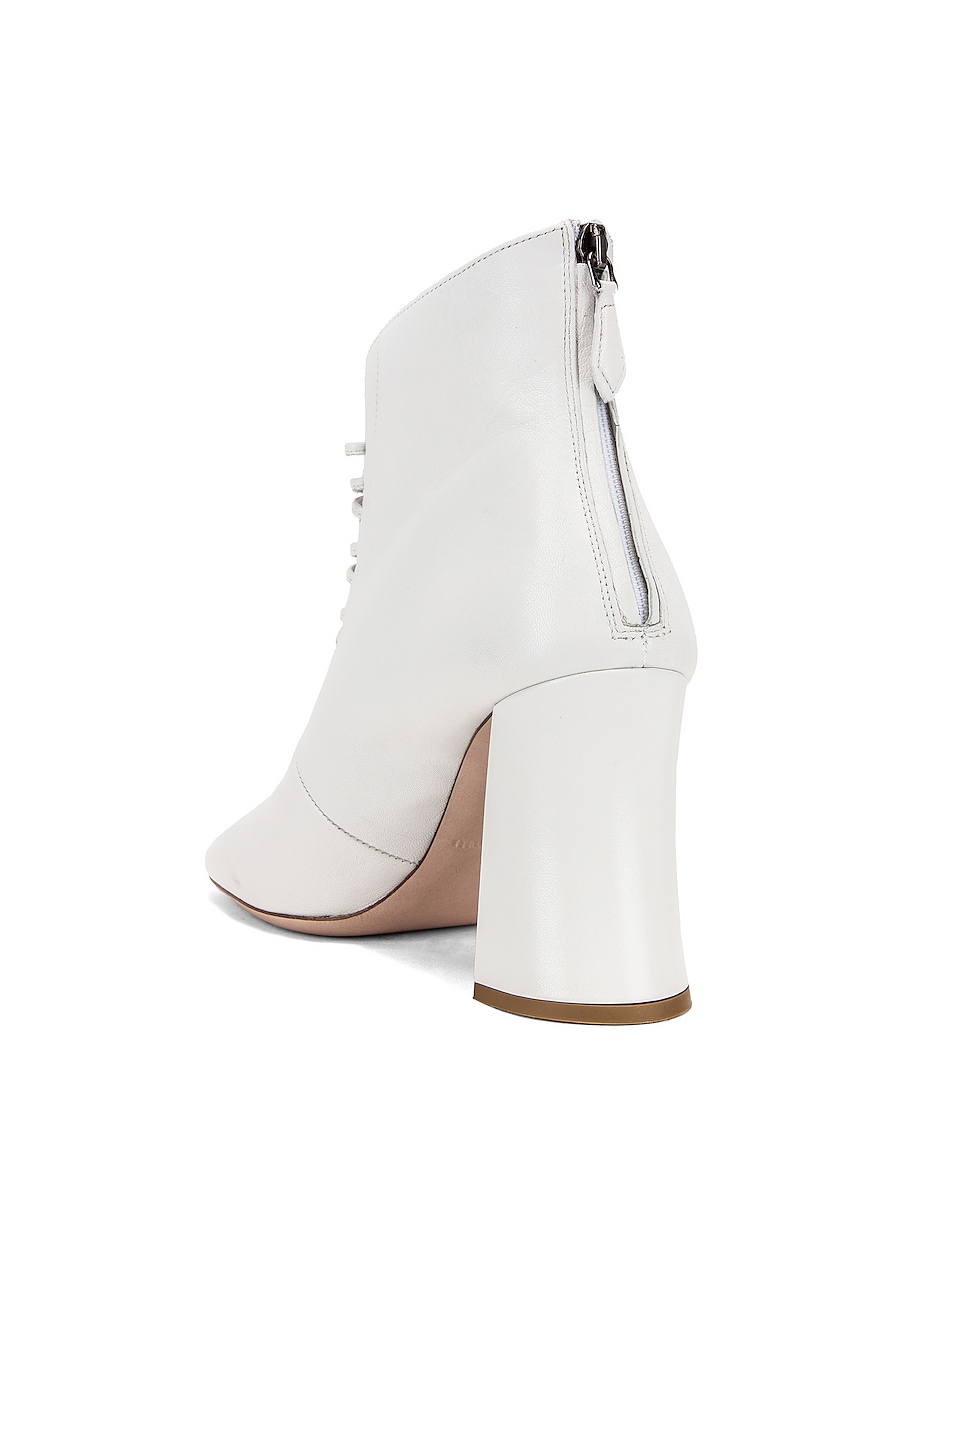 Image 3 of Miu Miu Lace Up Ankle Boots in White